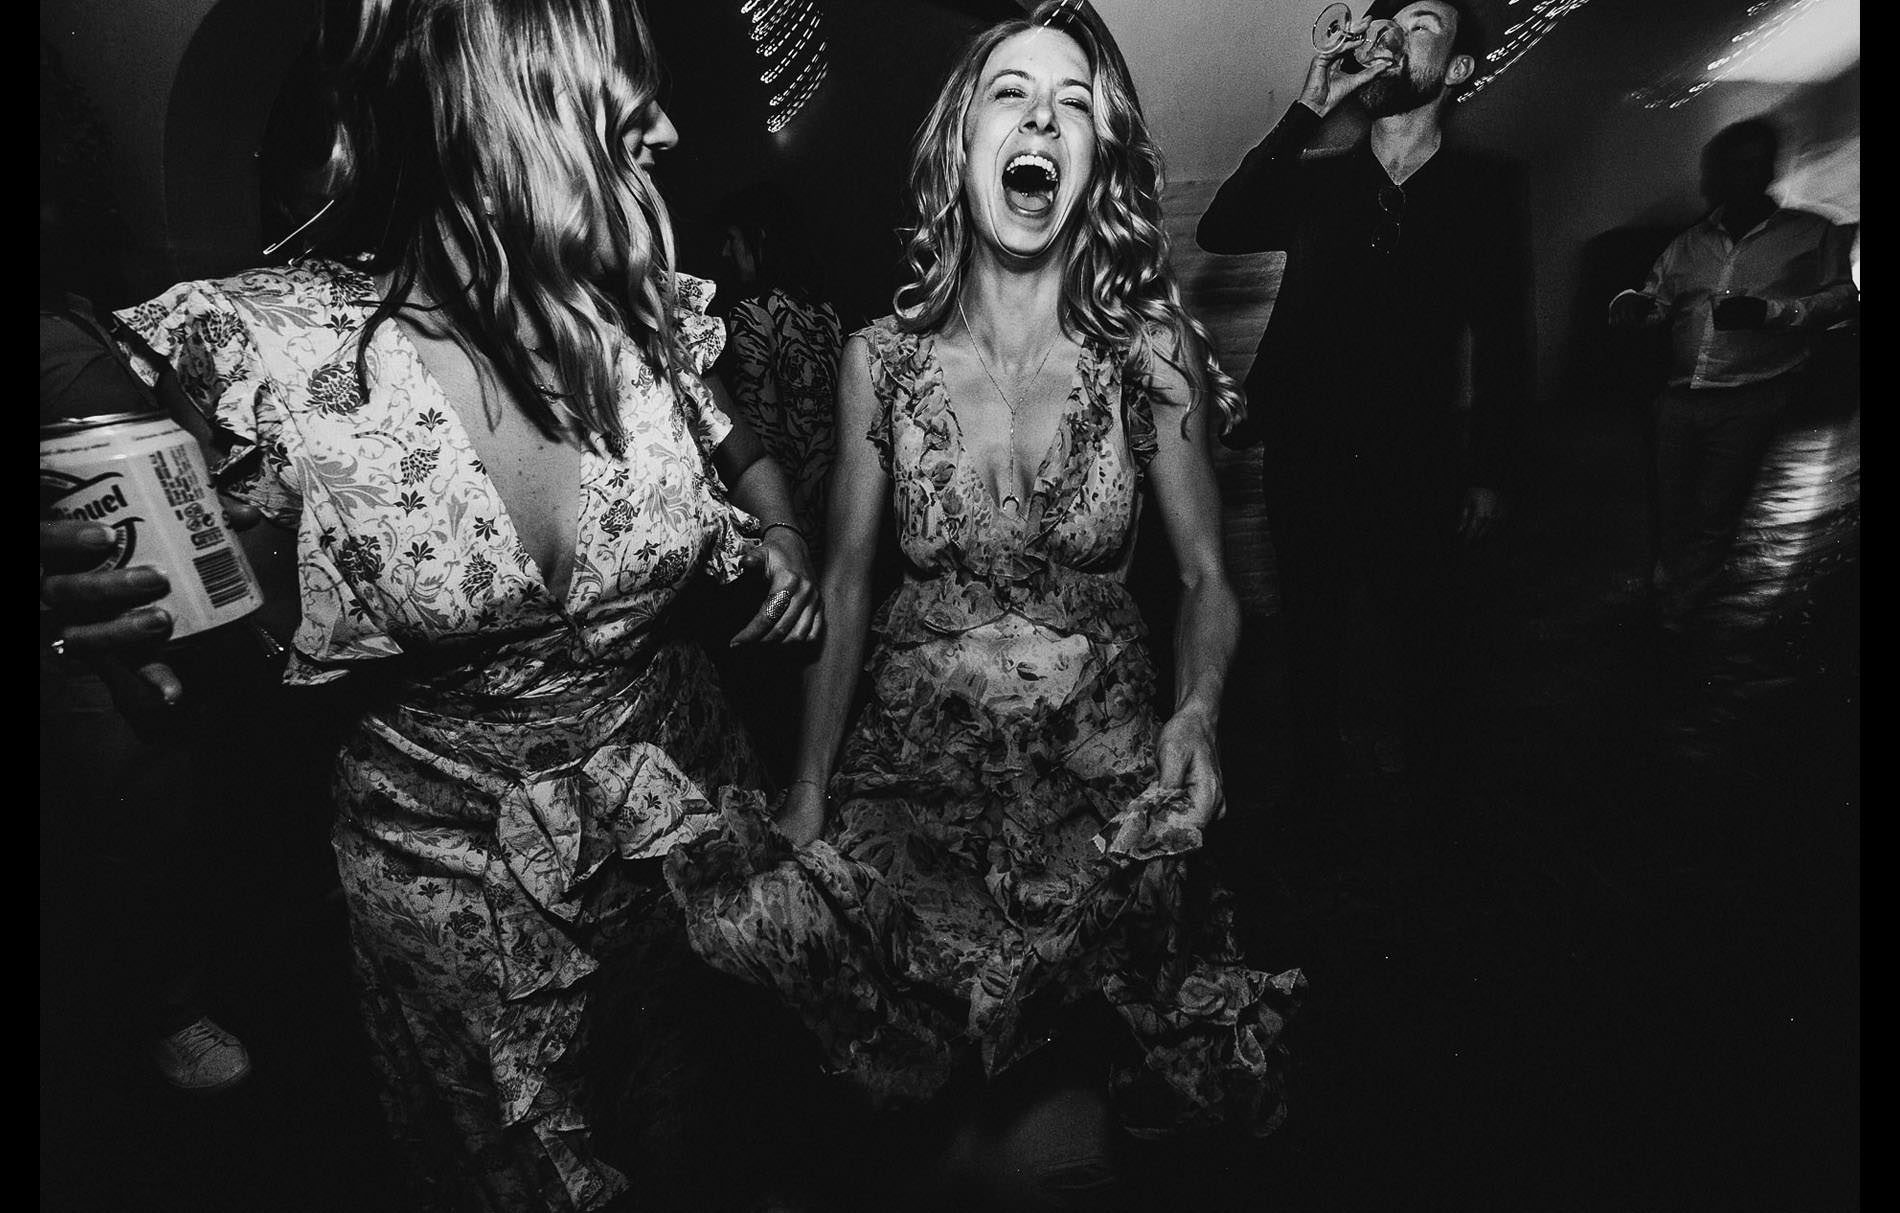 bride screaming in the wedding party